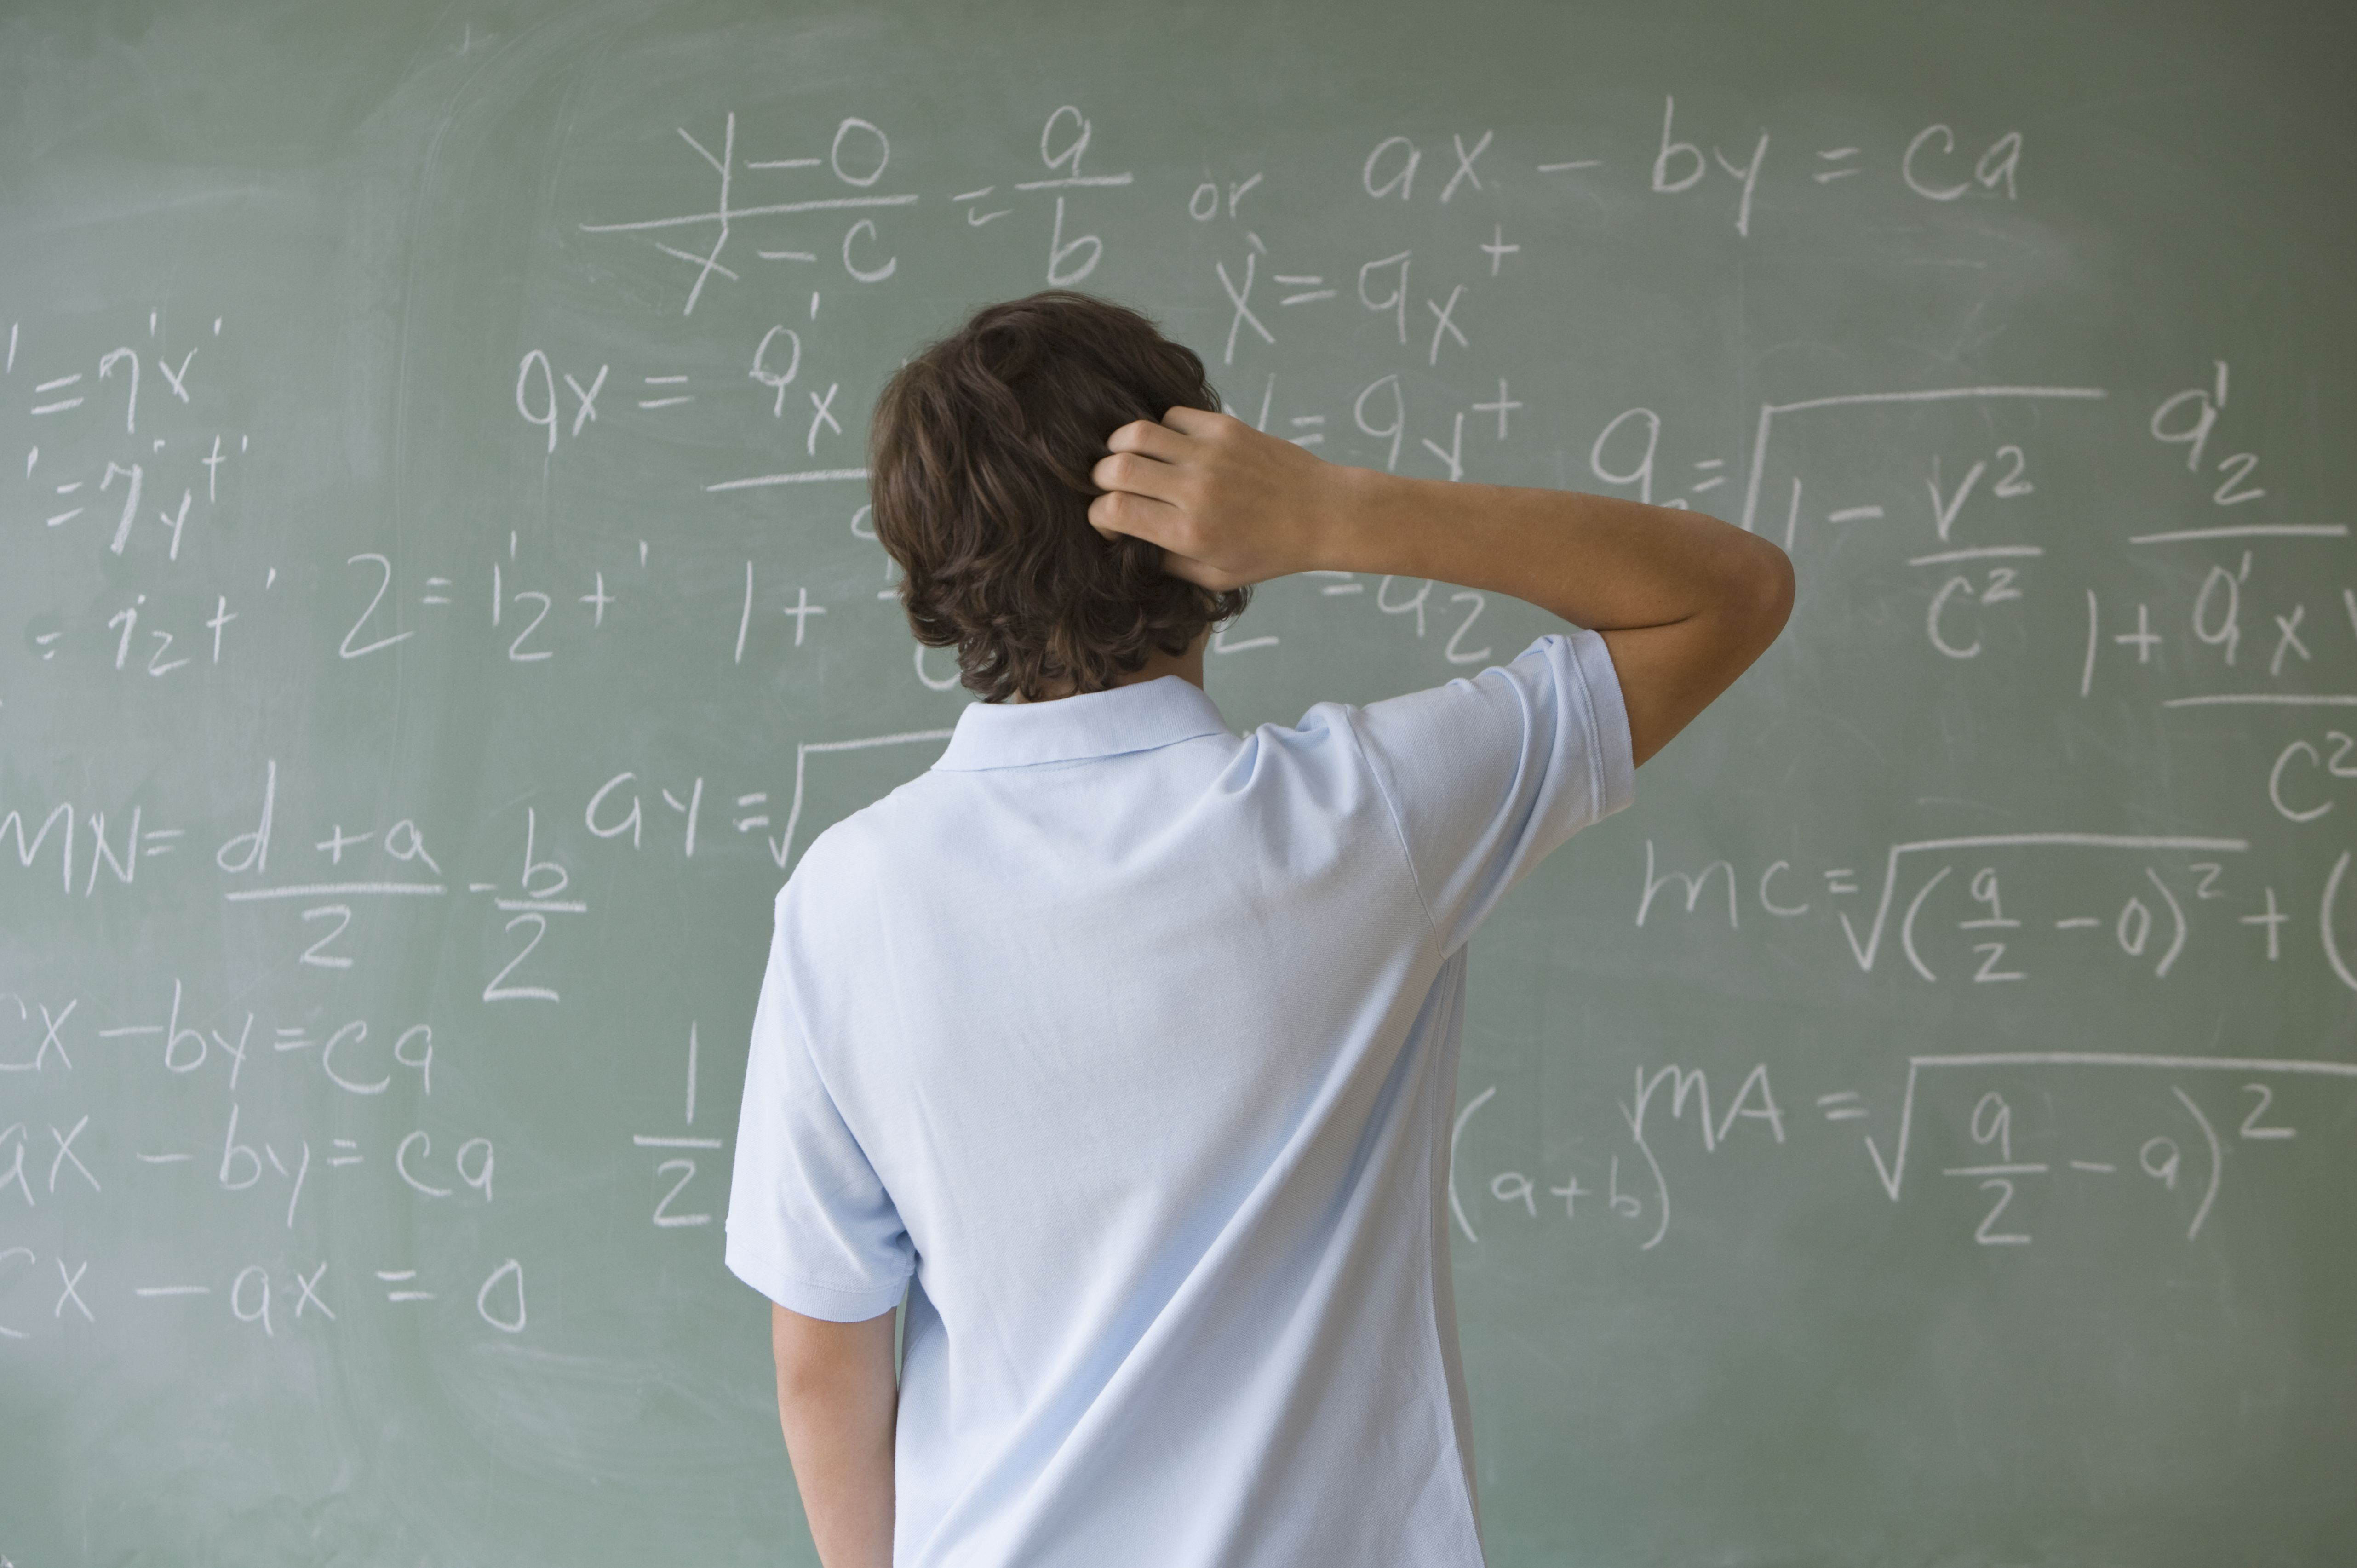 Definition And Examples Of Binomials In Algebra